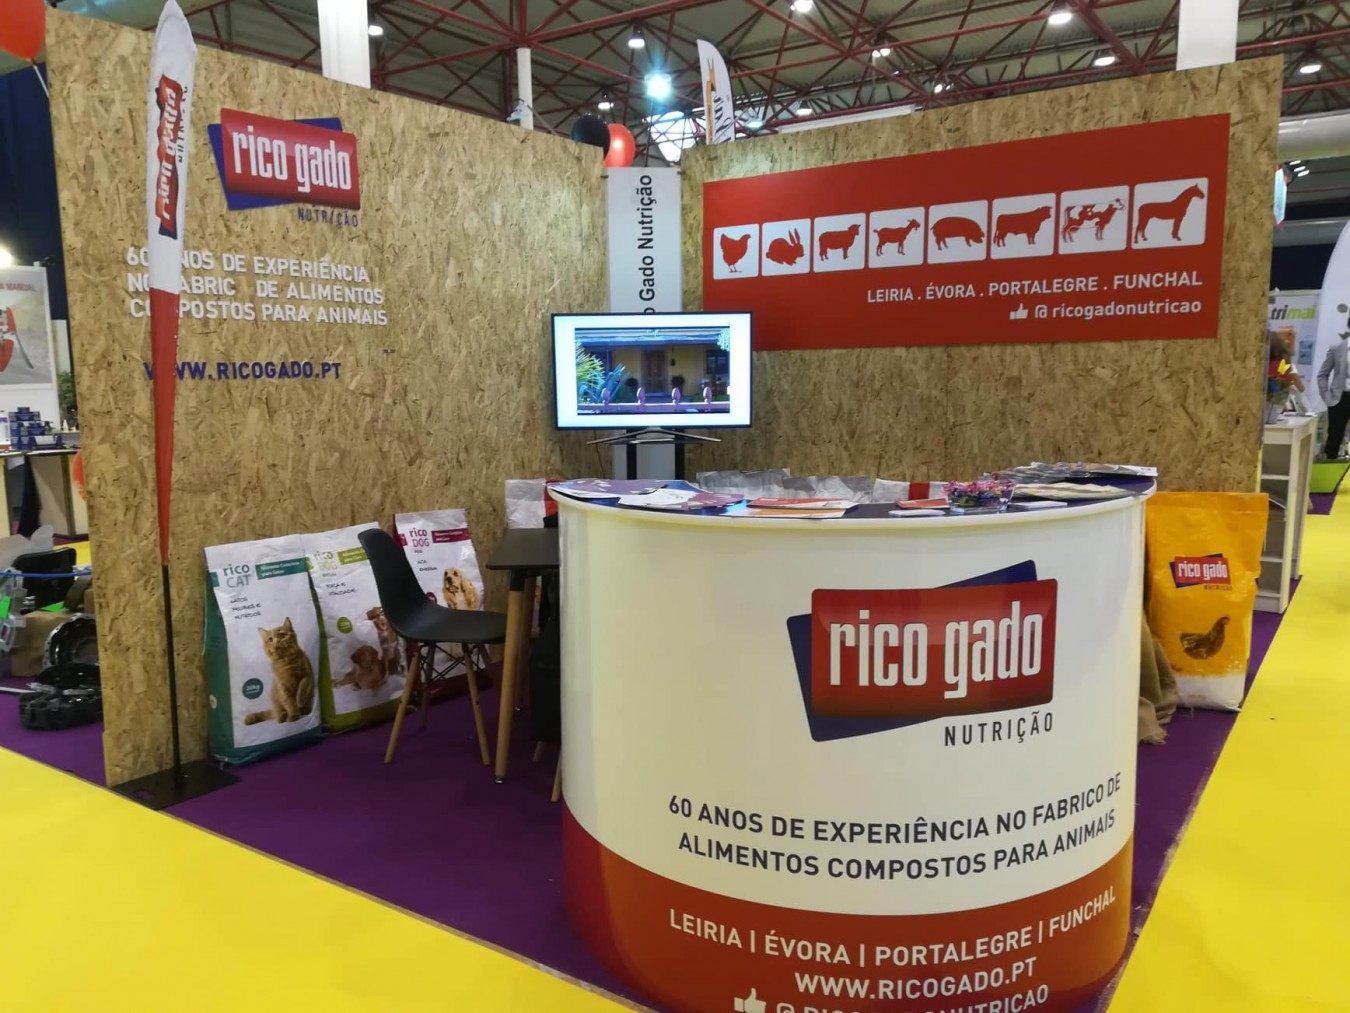 Rico Gado Nutrition is present at the Feira Nacional da Agricultura